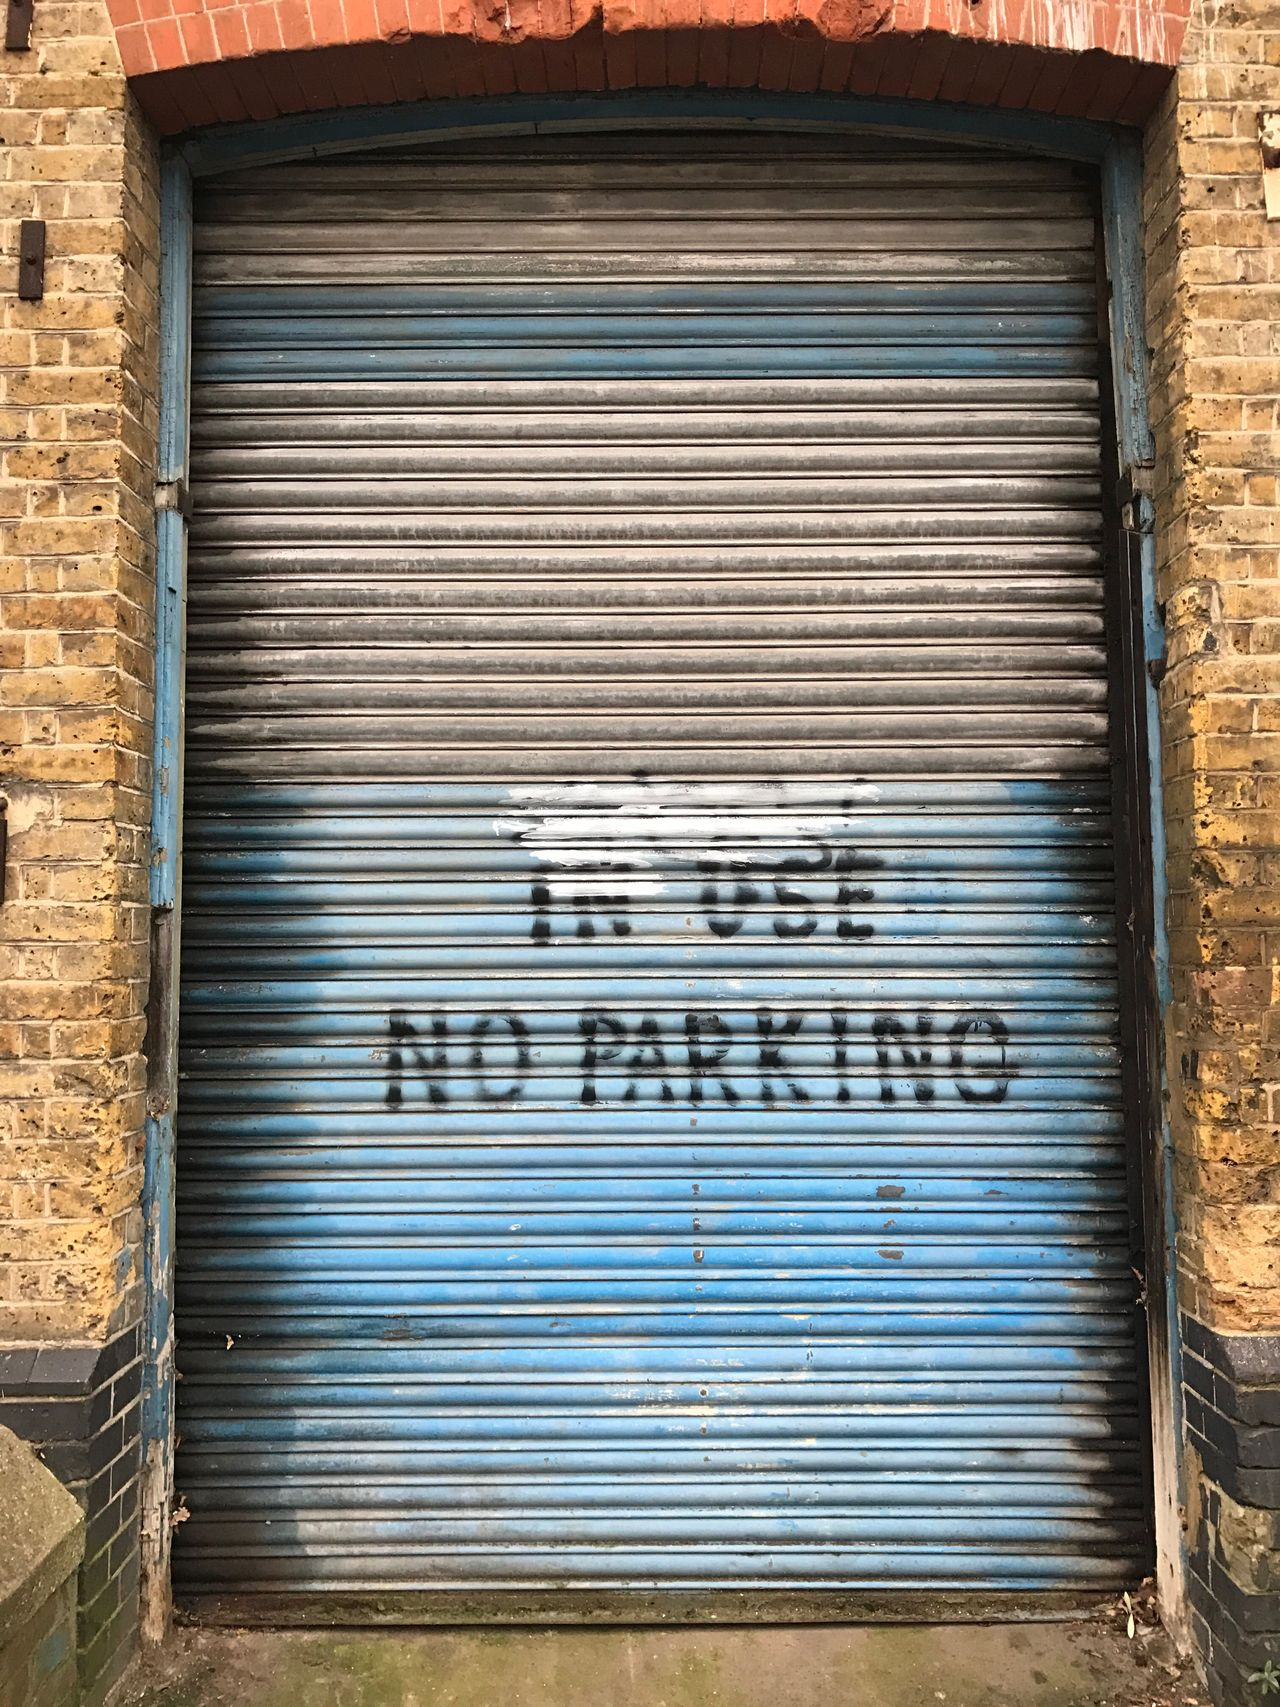 Shutter Corrugated Iron Corrugated Built Structure Closed Building Exterior Outdoors No People Day Architecture Close-up No Parking No Parking Sign Brick Wall Bricks